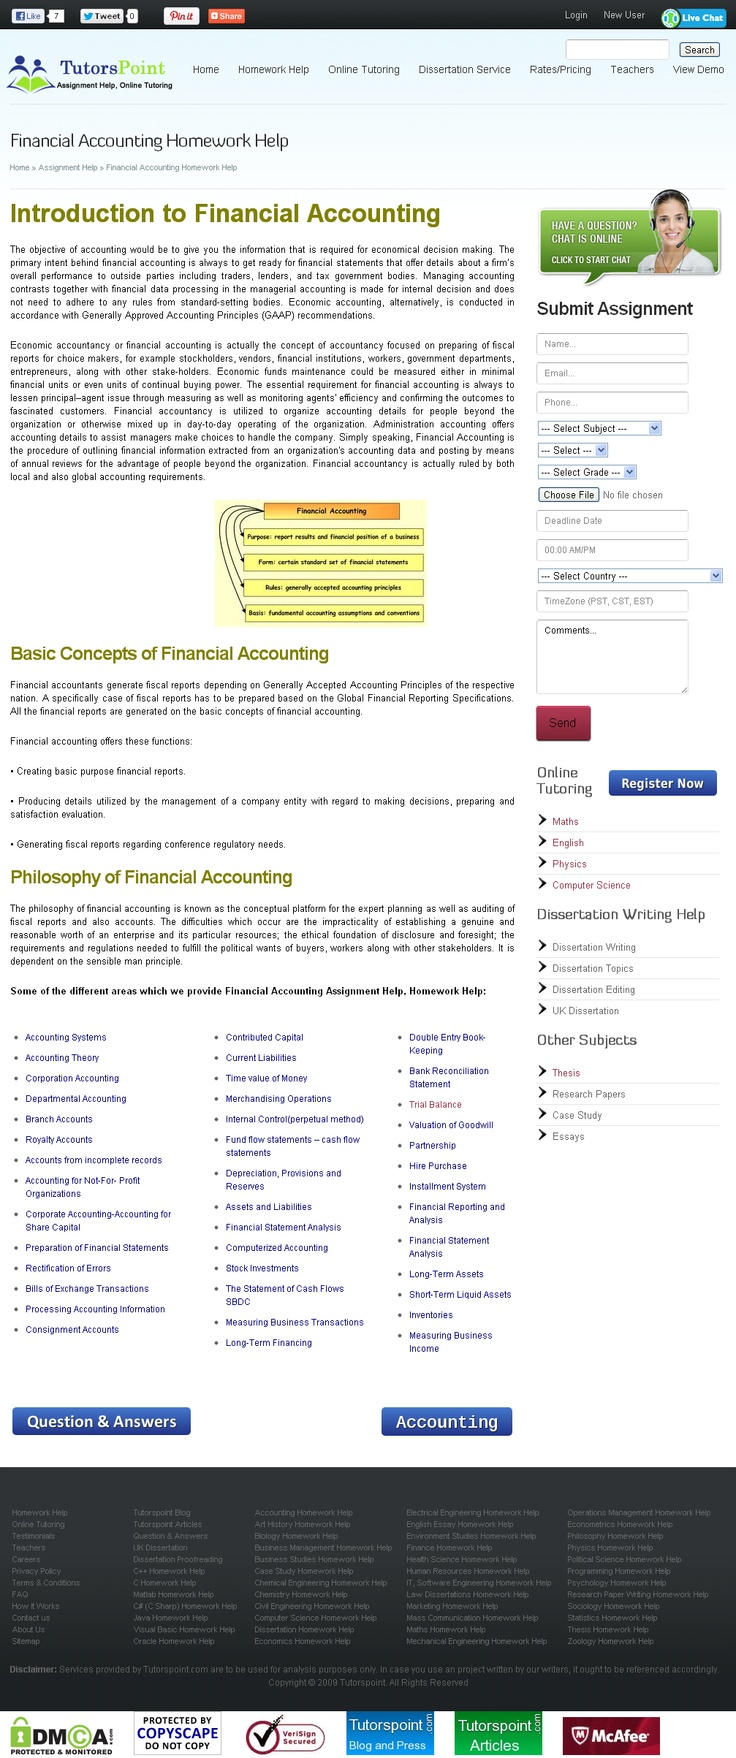 financial accounting assignment help aqa food technology  studydaddy is the place where you can get easy online accounting homework help best financial accounting assignment help service from all assignment help at